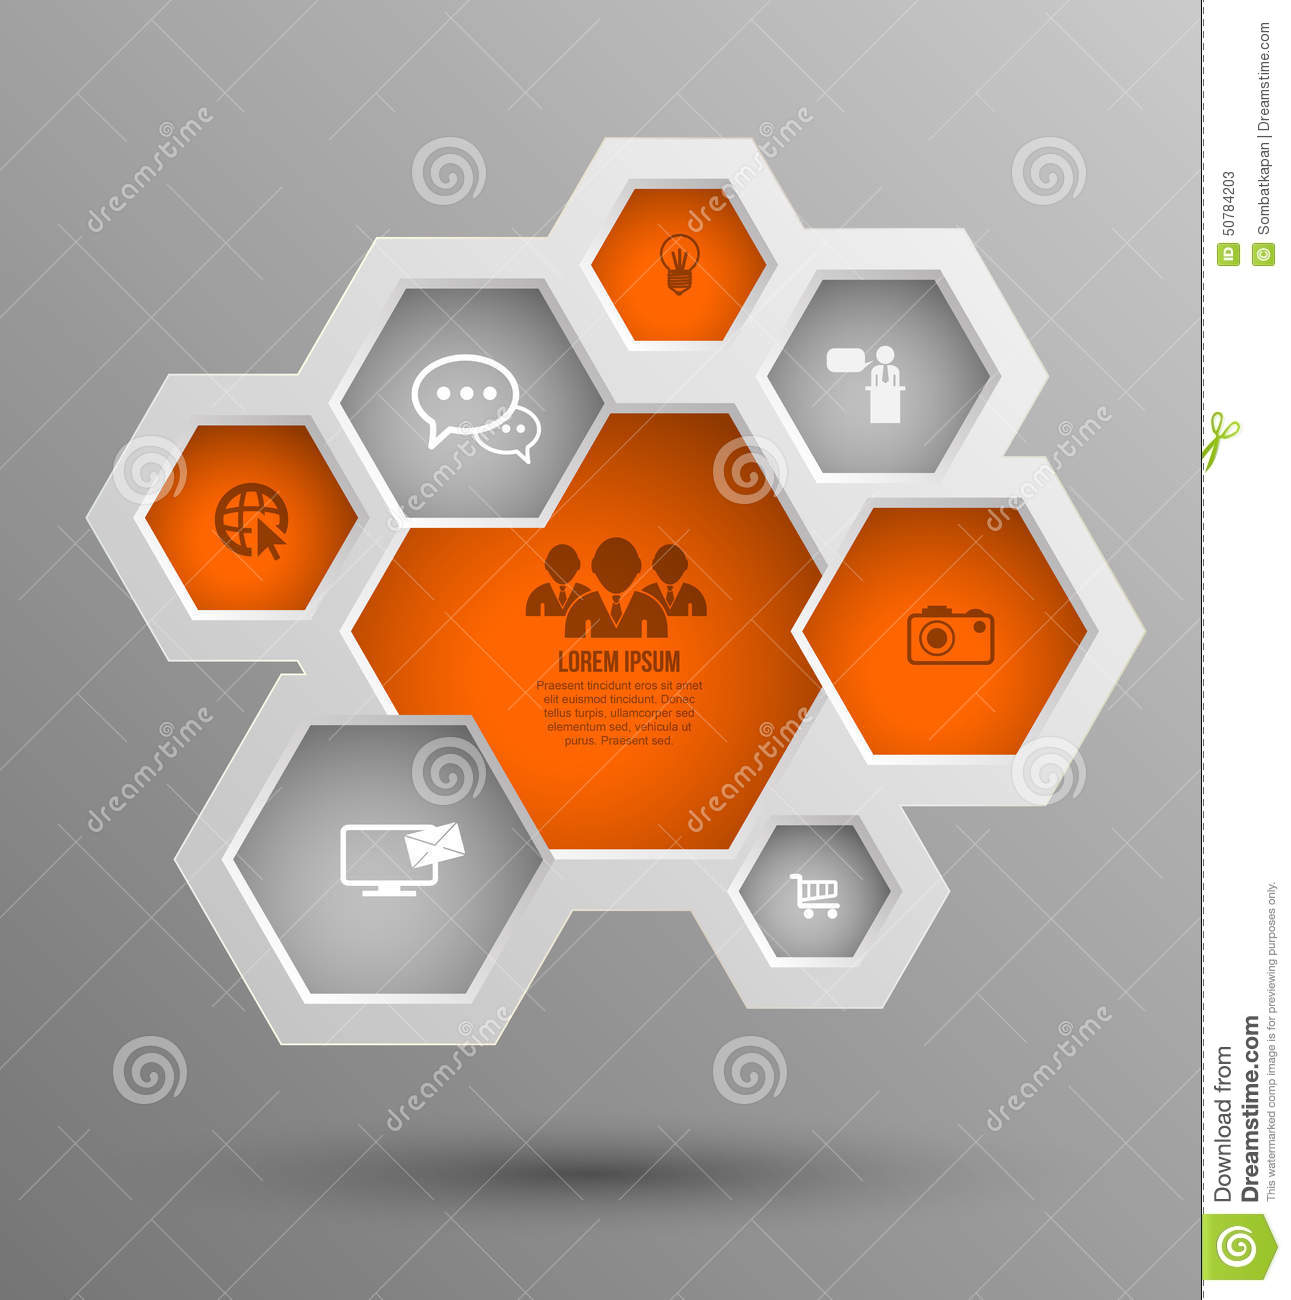 vector hexagon group with icons for business concepts business concepts